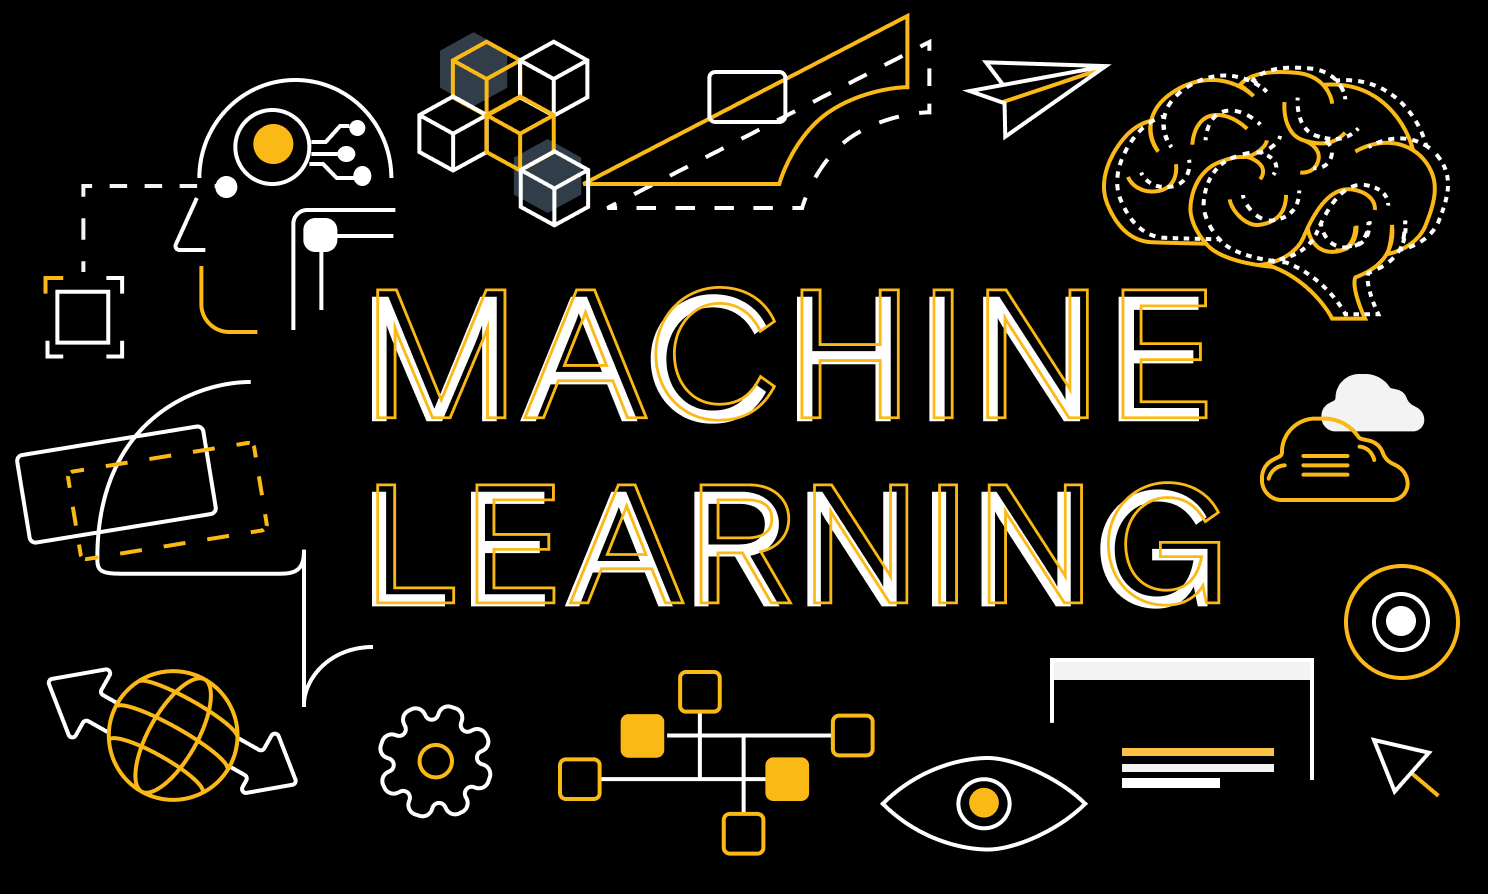 Machine Learning is gaining popularity